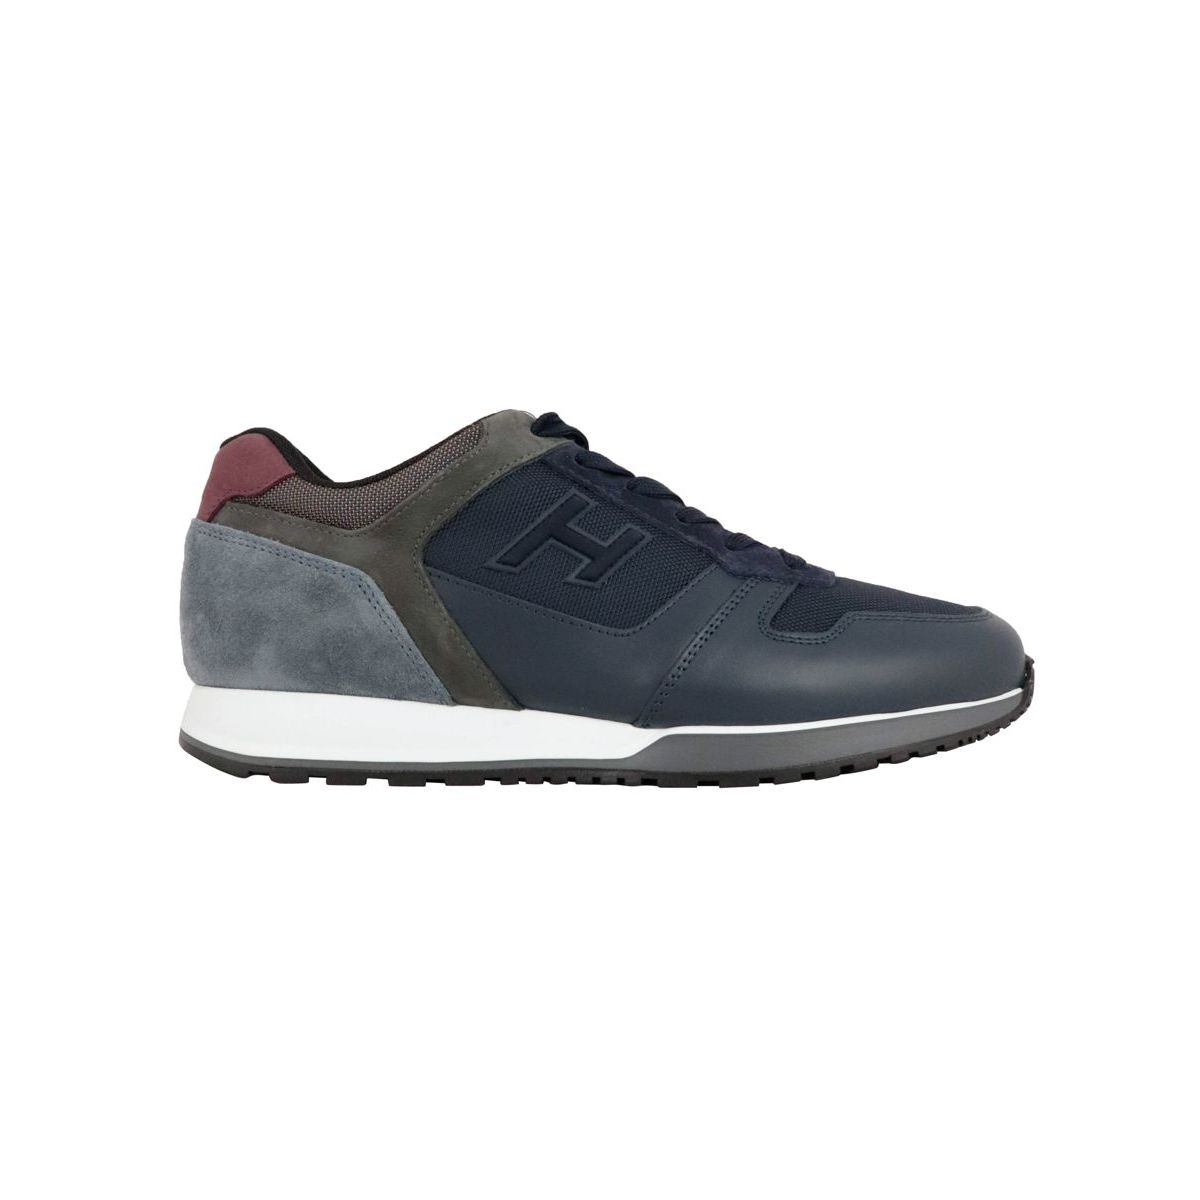 Sneakers with 321 leather sole with suede inserts